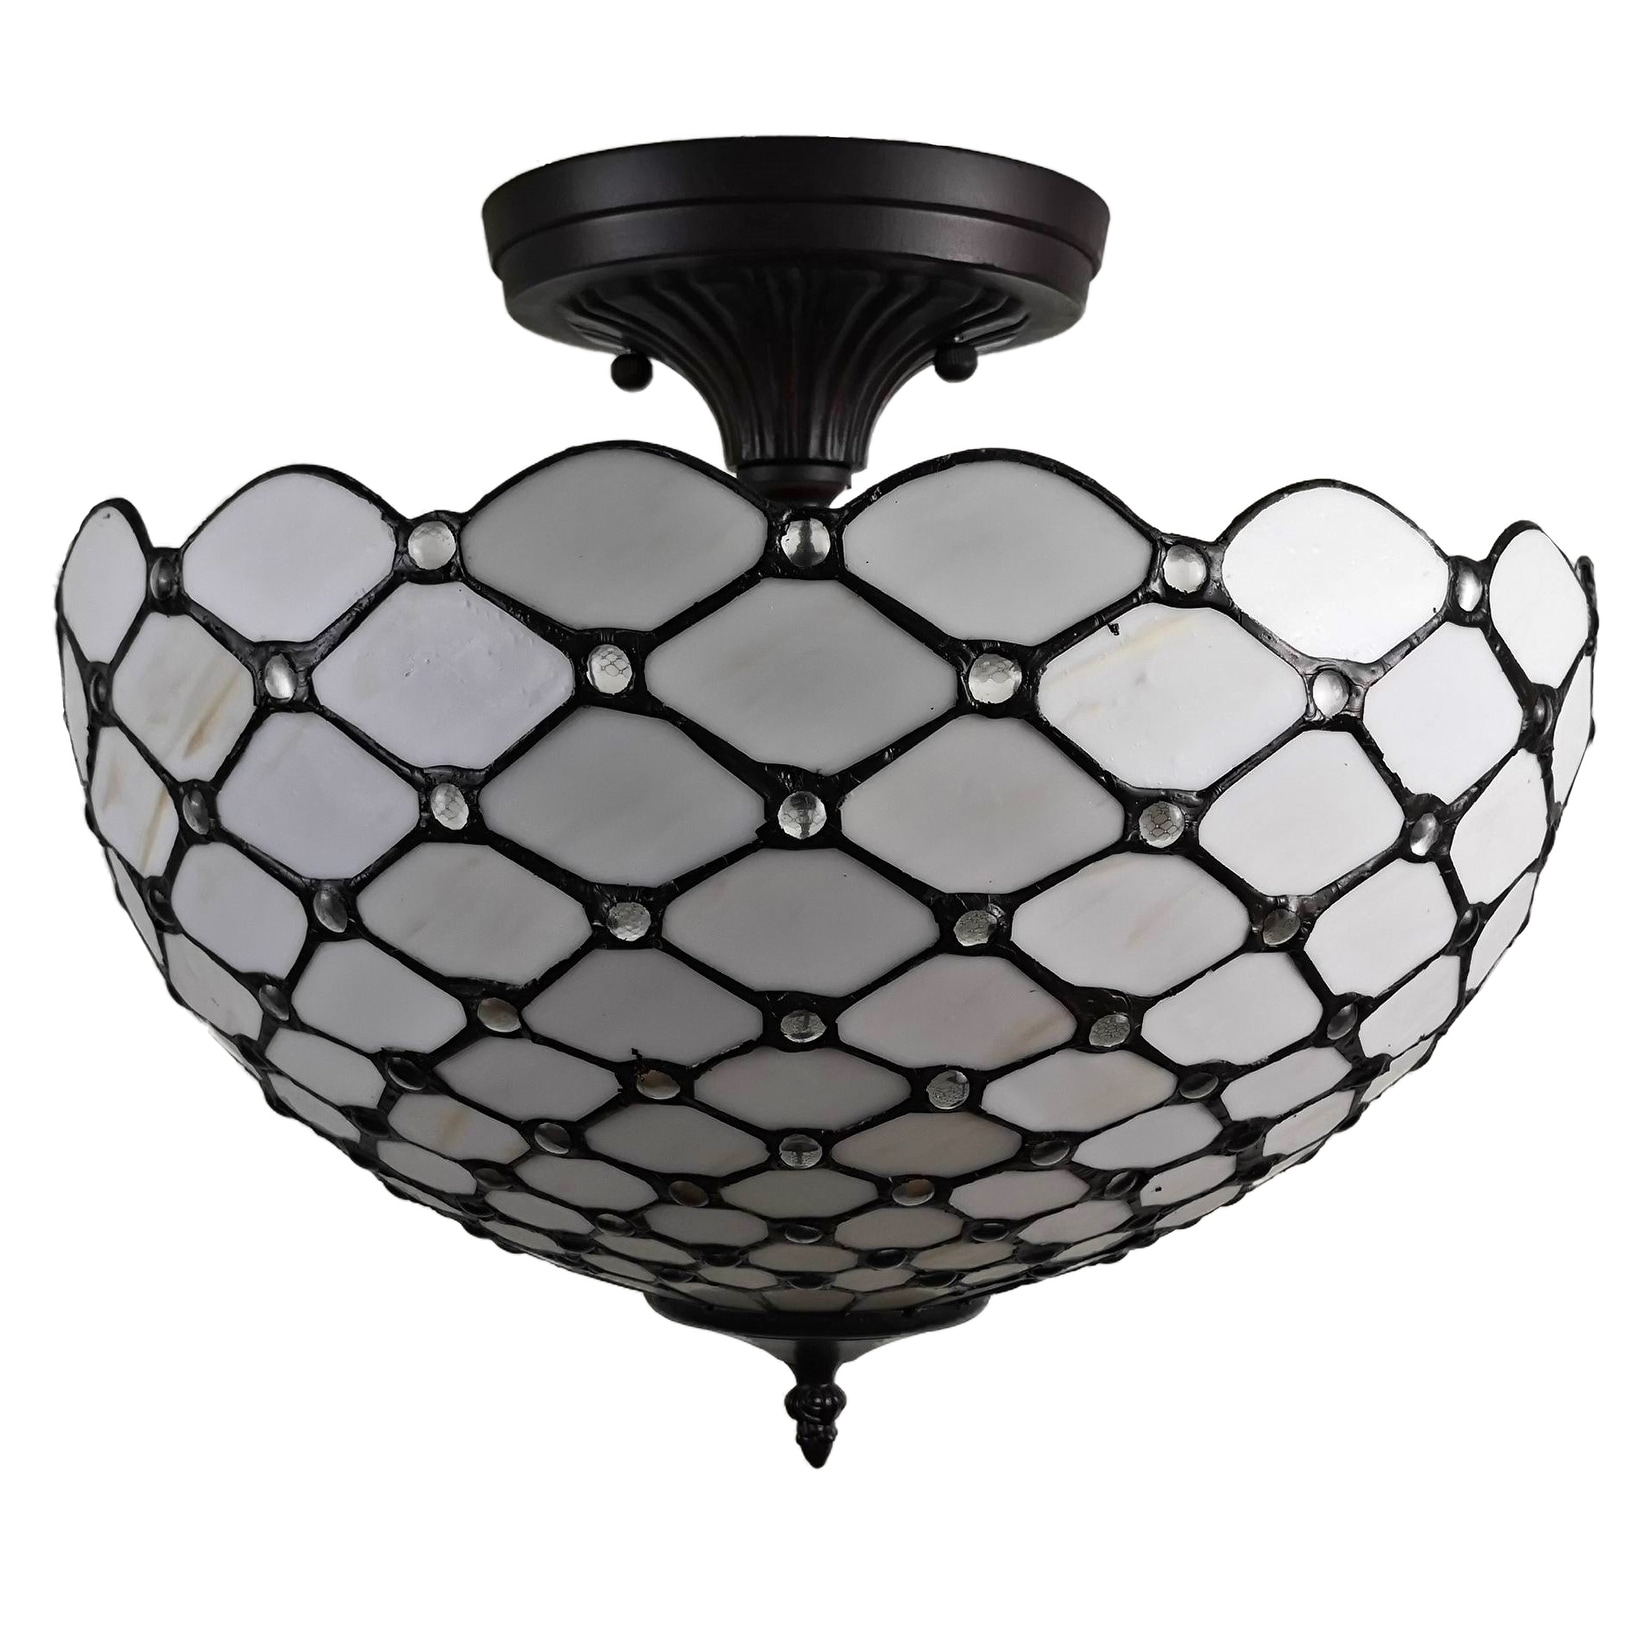 Tiffany Style Ceiling Fixture Lamp Jeweled Semi Flush 16 Wide Stained Glass White Bedroom Gift Am086cl16b Amora Lighting